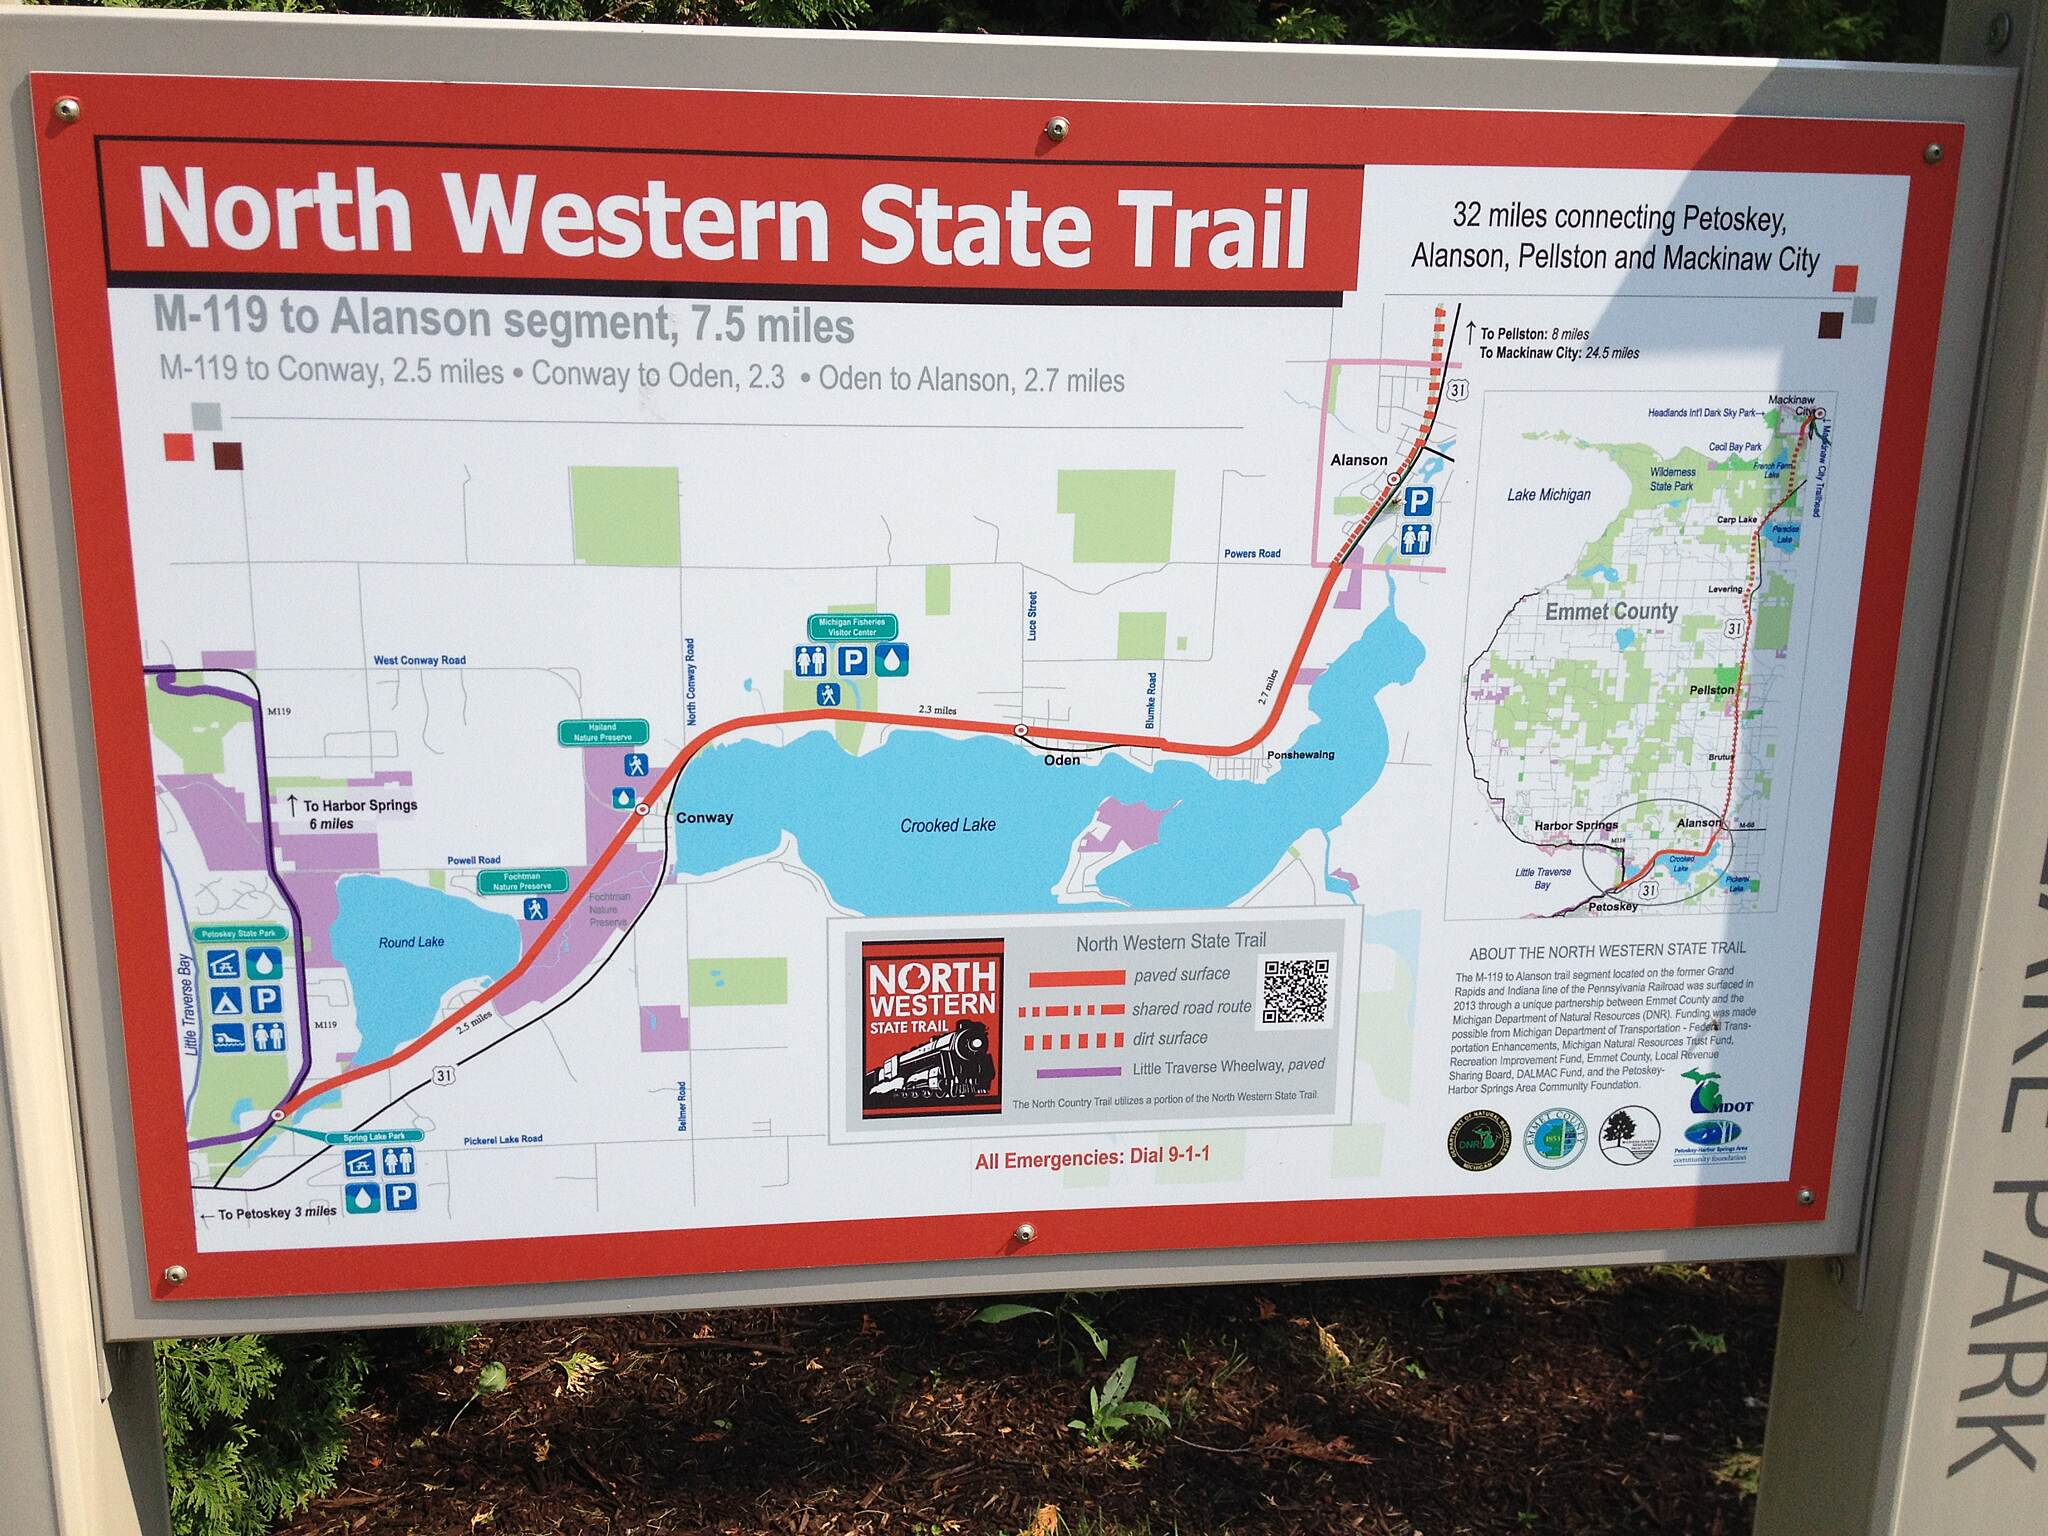 North Western State Trail Map of New Trail Map of New Trail